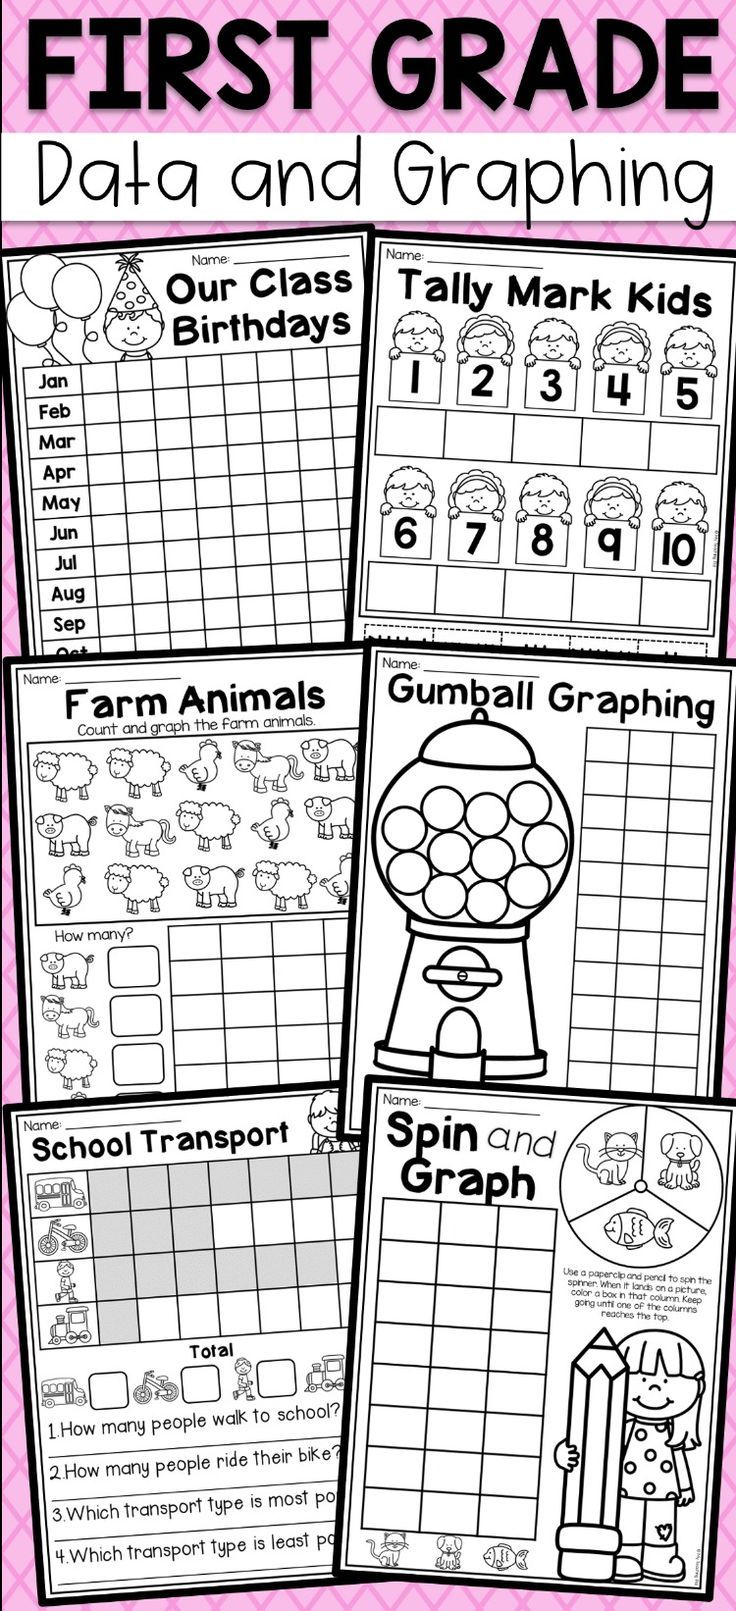 First Grade Data And Graphing Worksheets Distance Learning Graphing First Grade First Grade Worksheets Verb Activities For First Grade